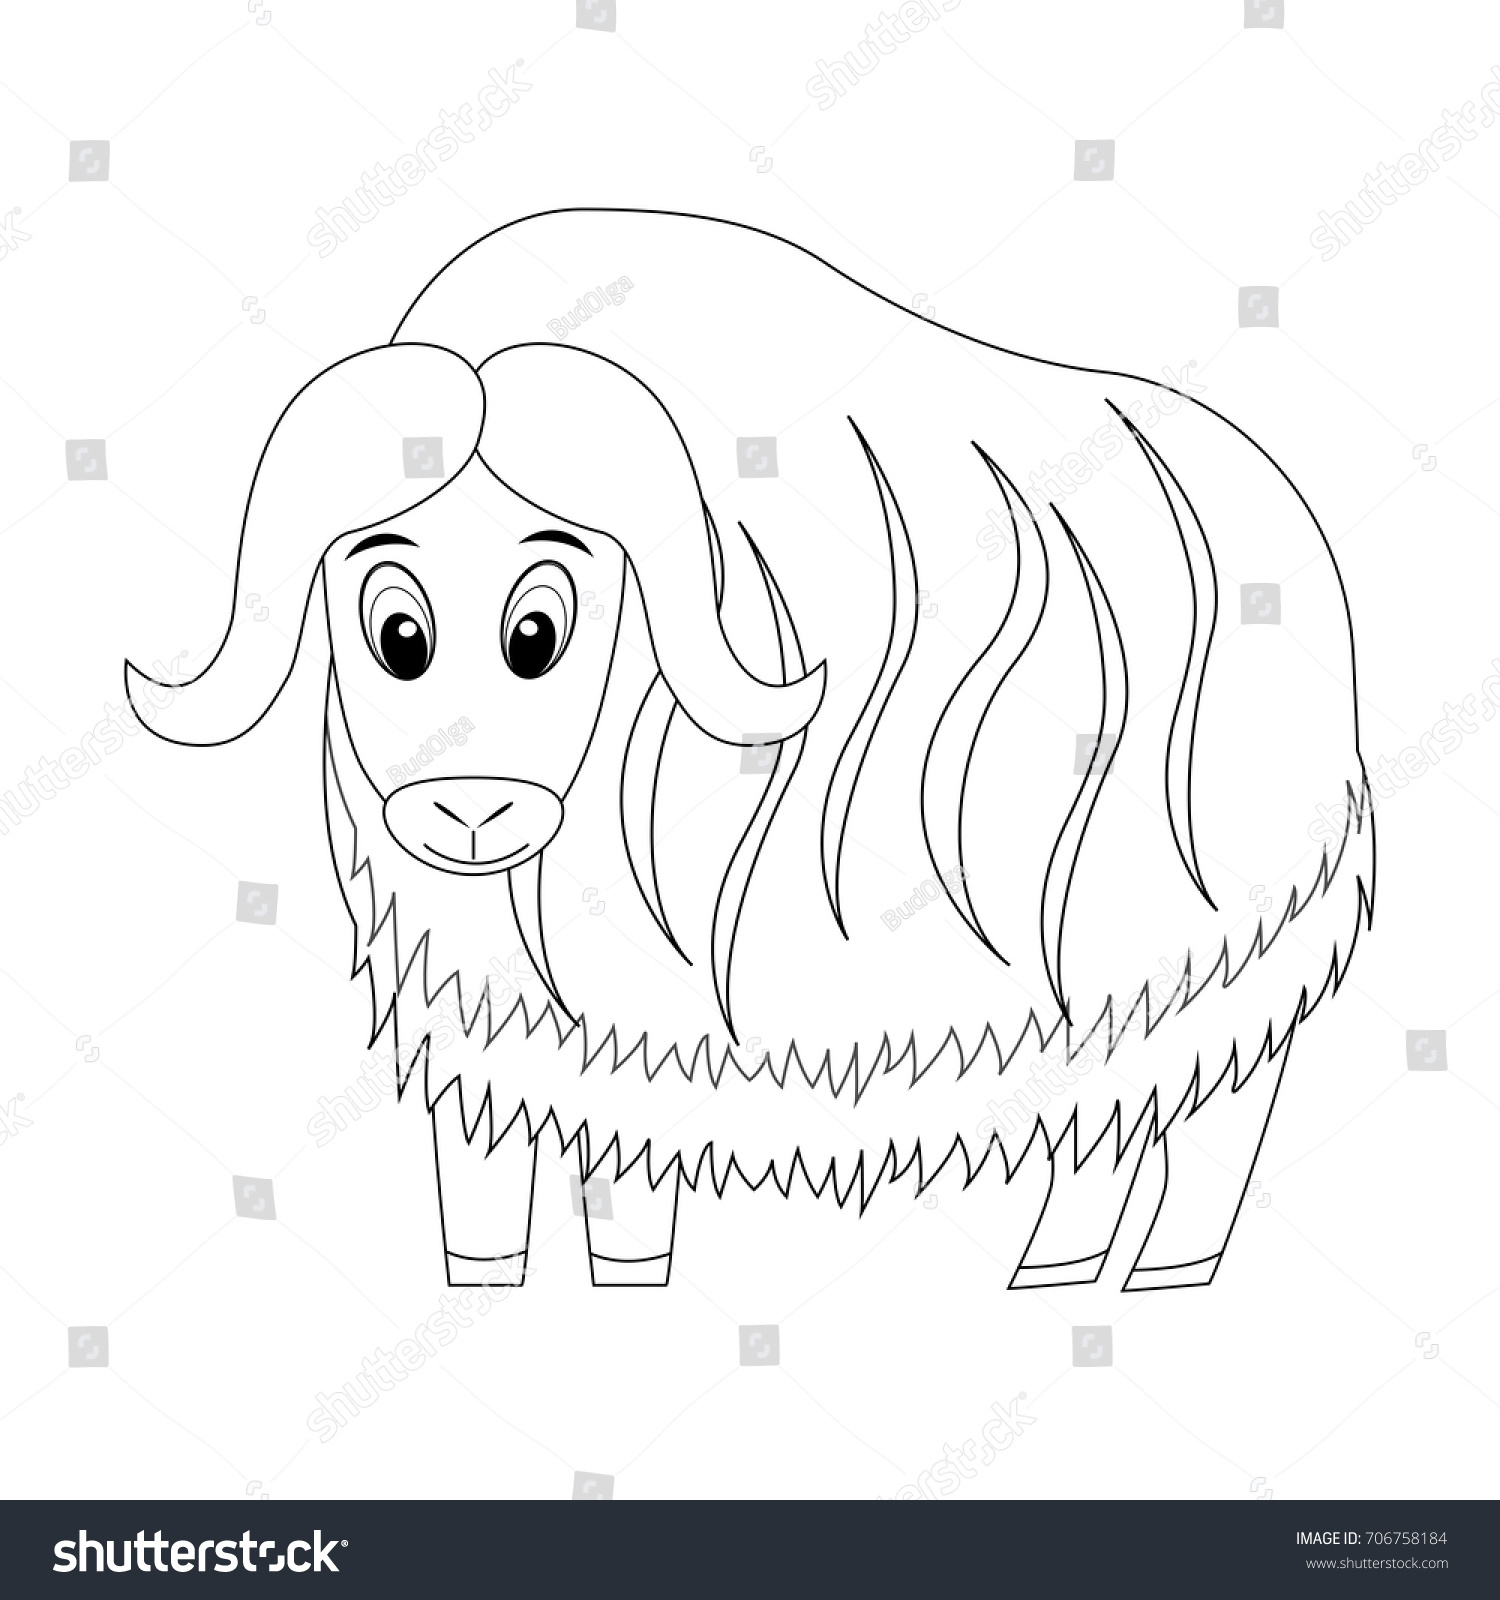 Colorless Funny Cartoon Musk Ox Vector Illustration Coloring Page Preschool Education Arctic